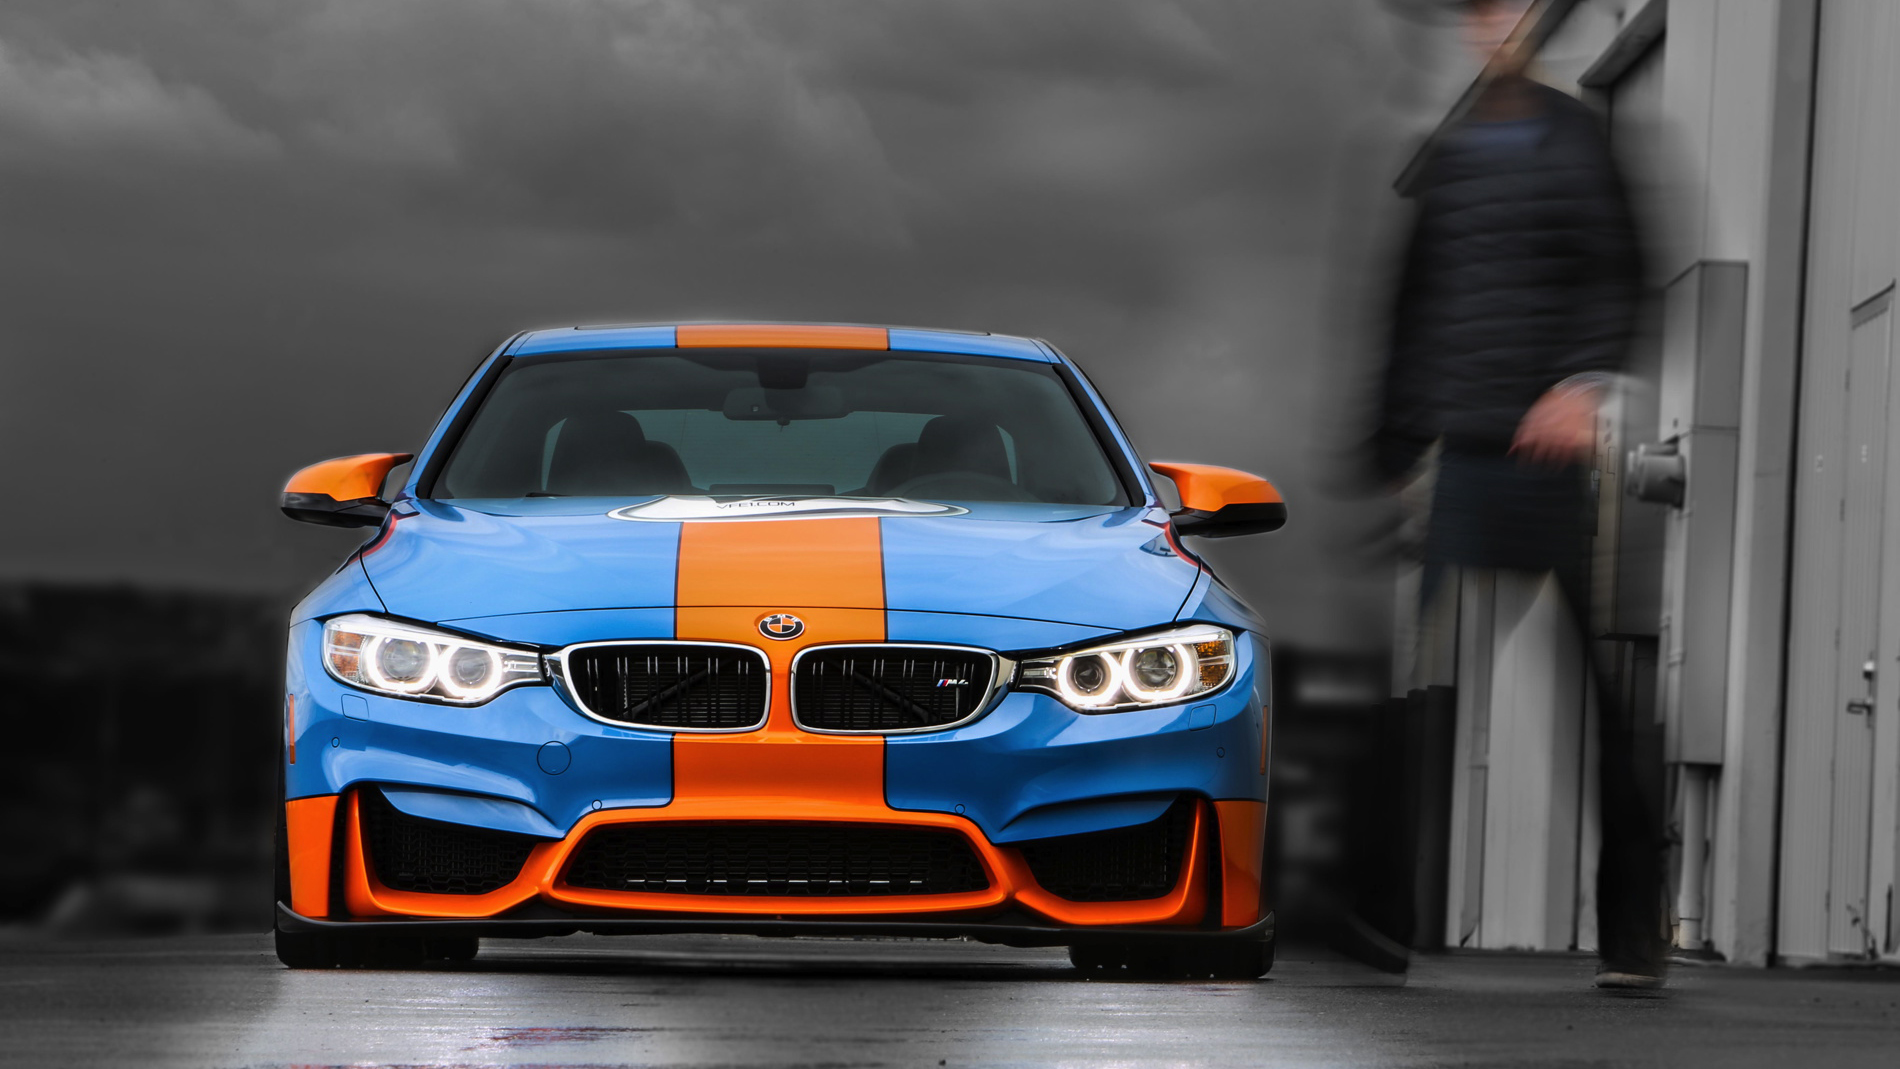 BMW M4 by HEX Tuning